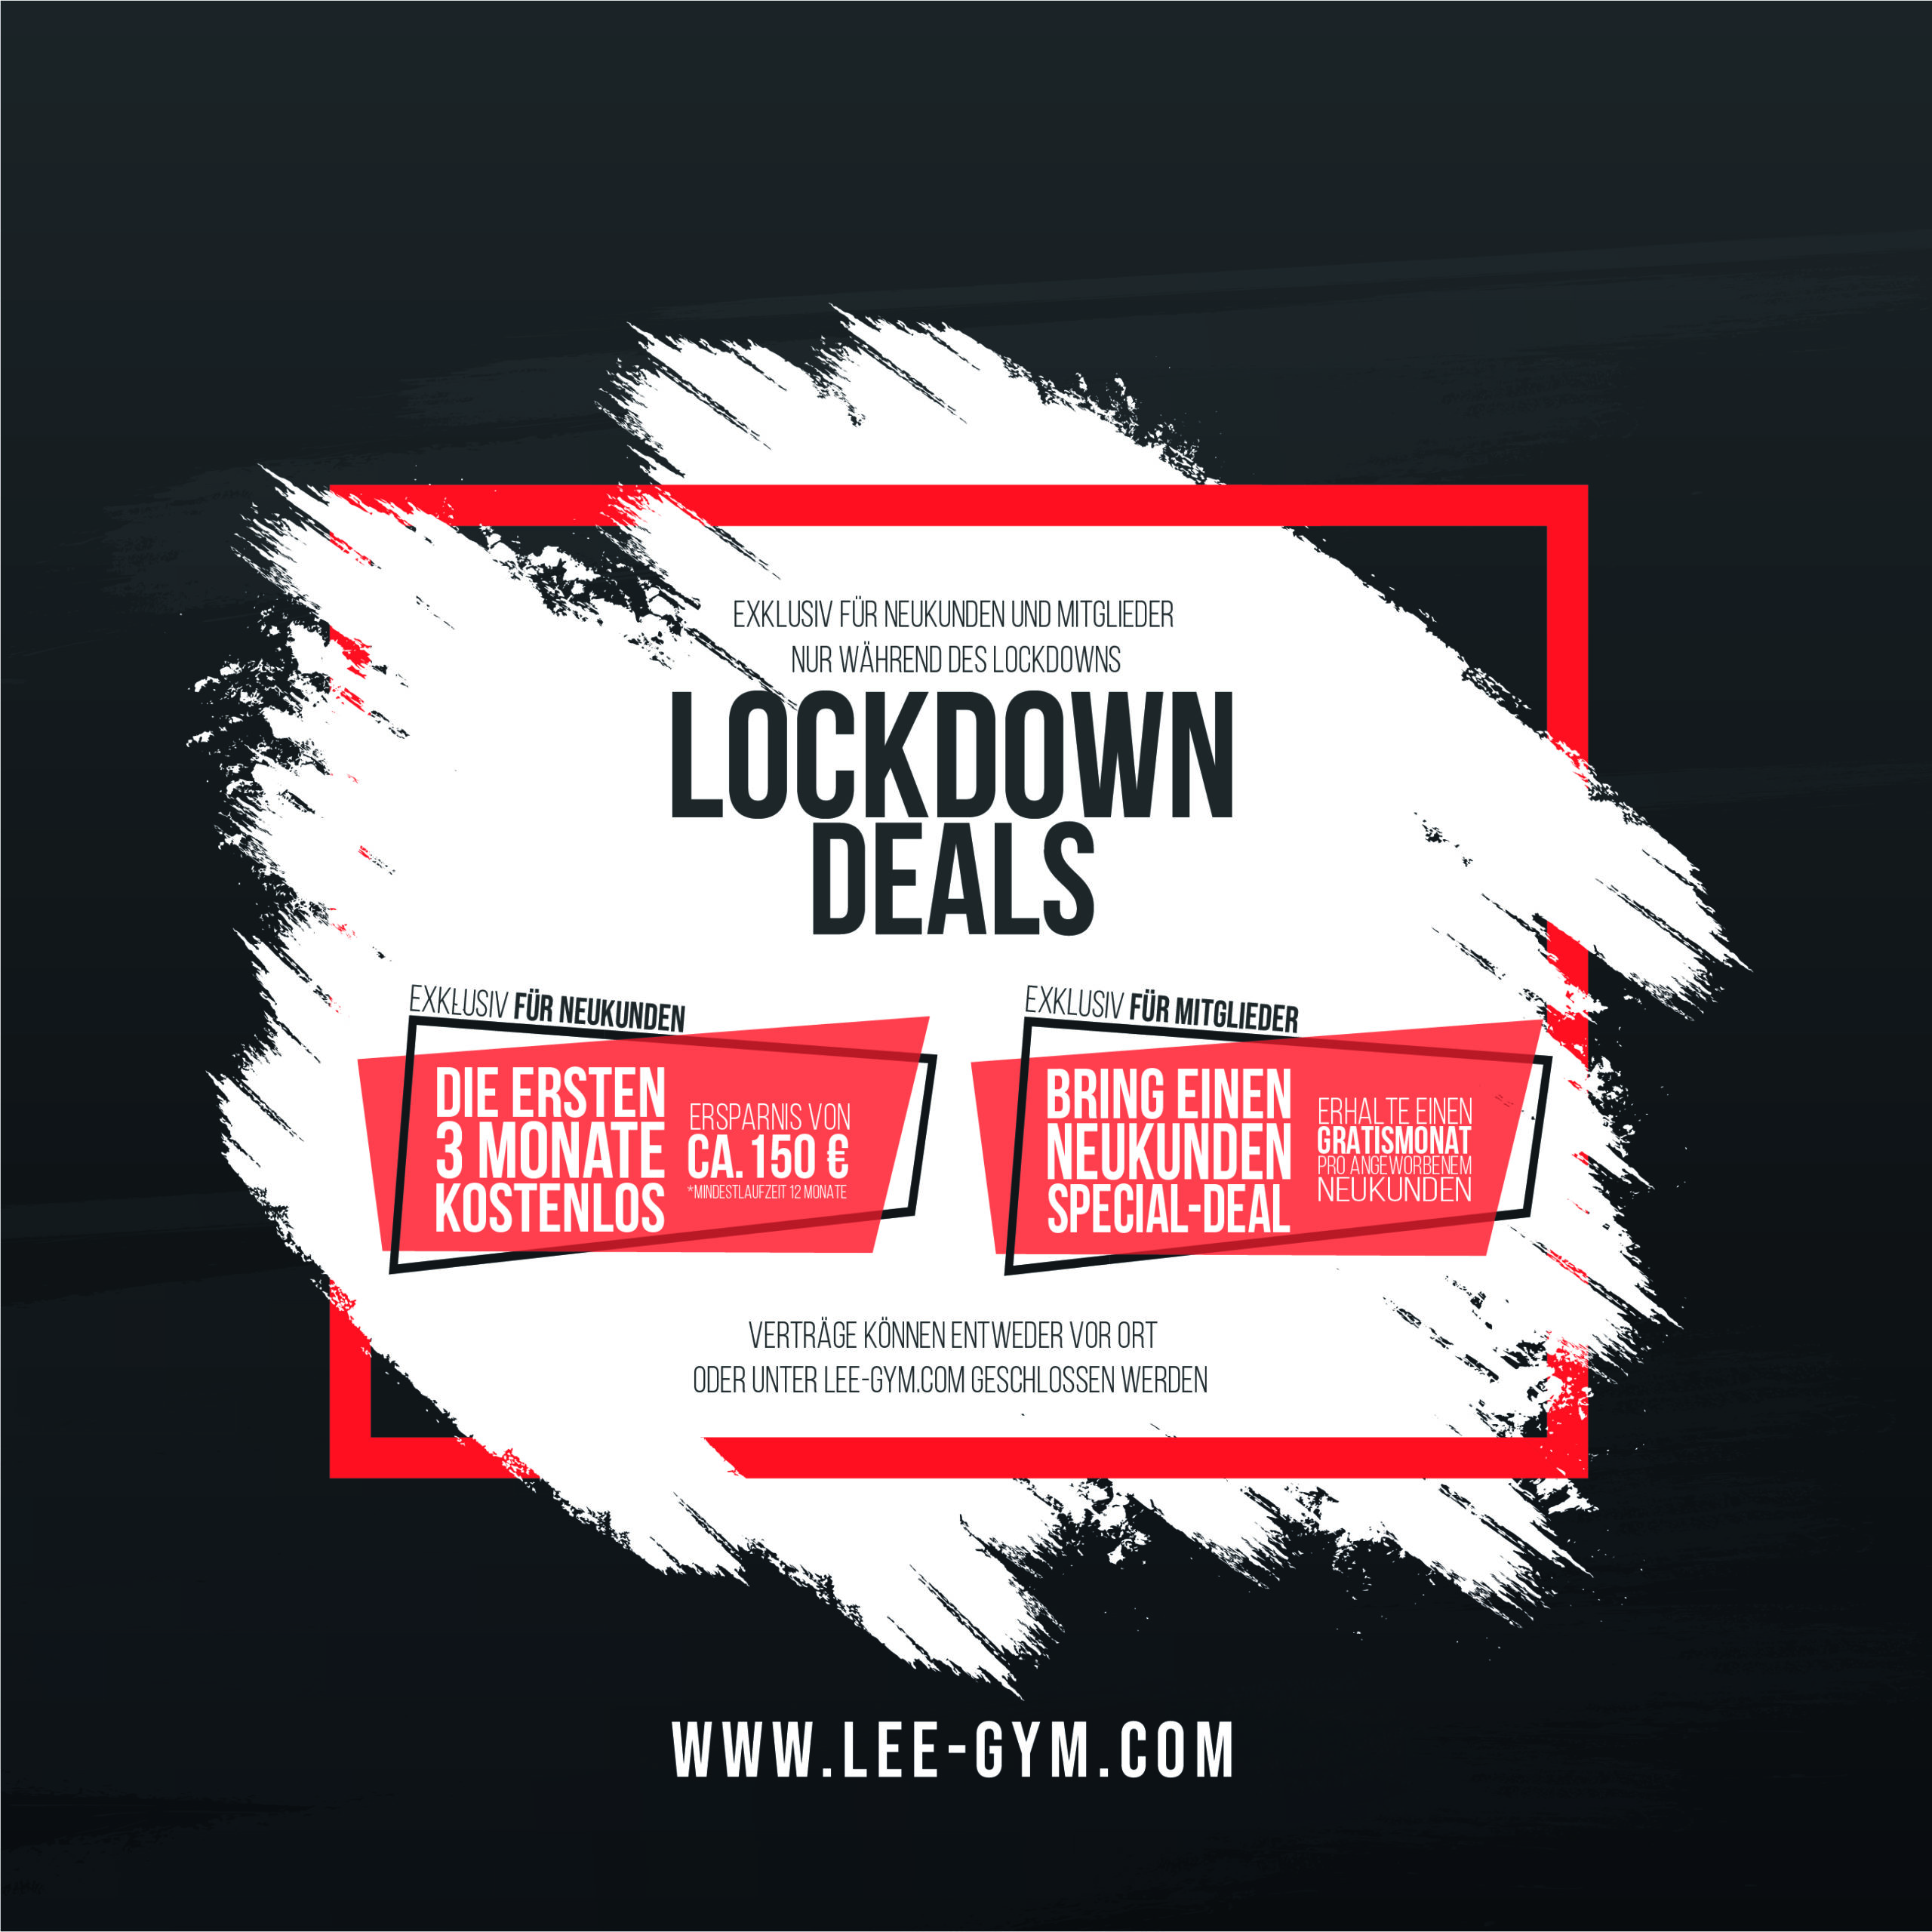 LockdownDeals LeeGym scaled - Lee-Gym